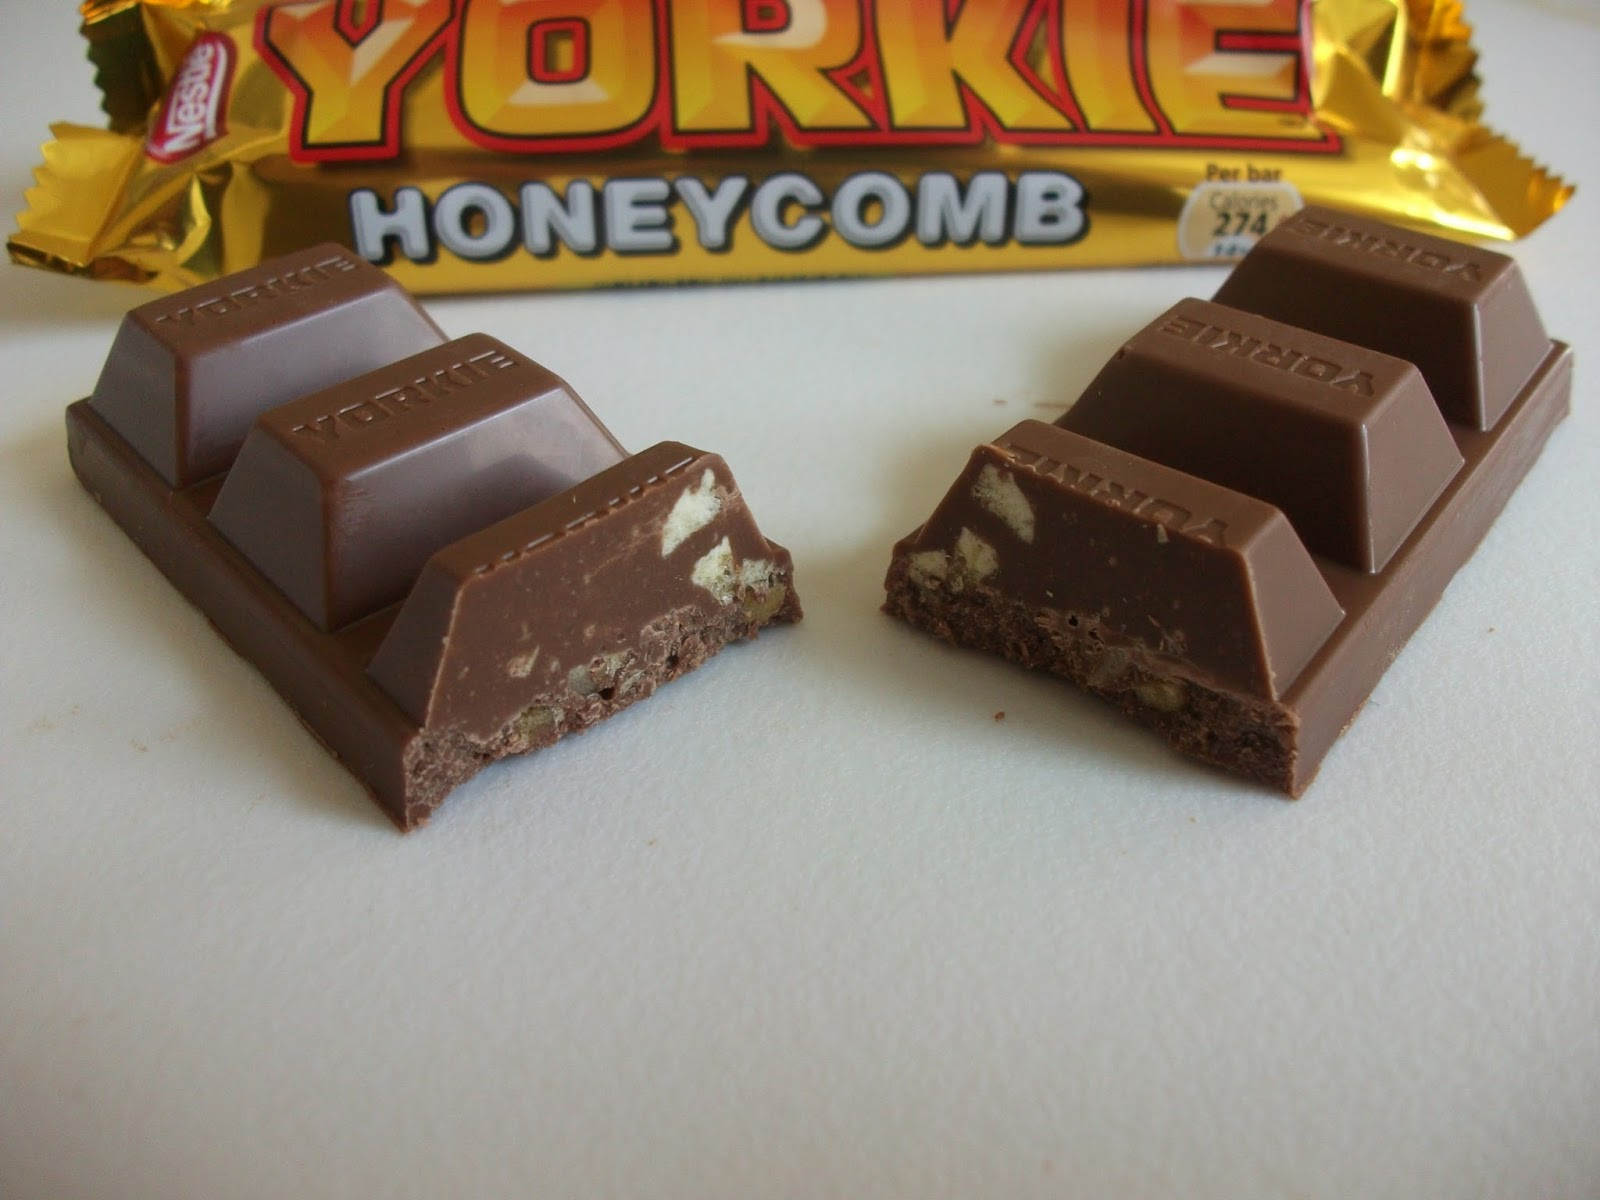 ... Snack Reviews: Nestlé Yorkie Honeycomb Bar (Limited Edition) Review